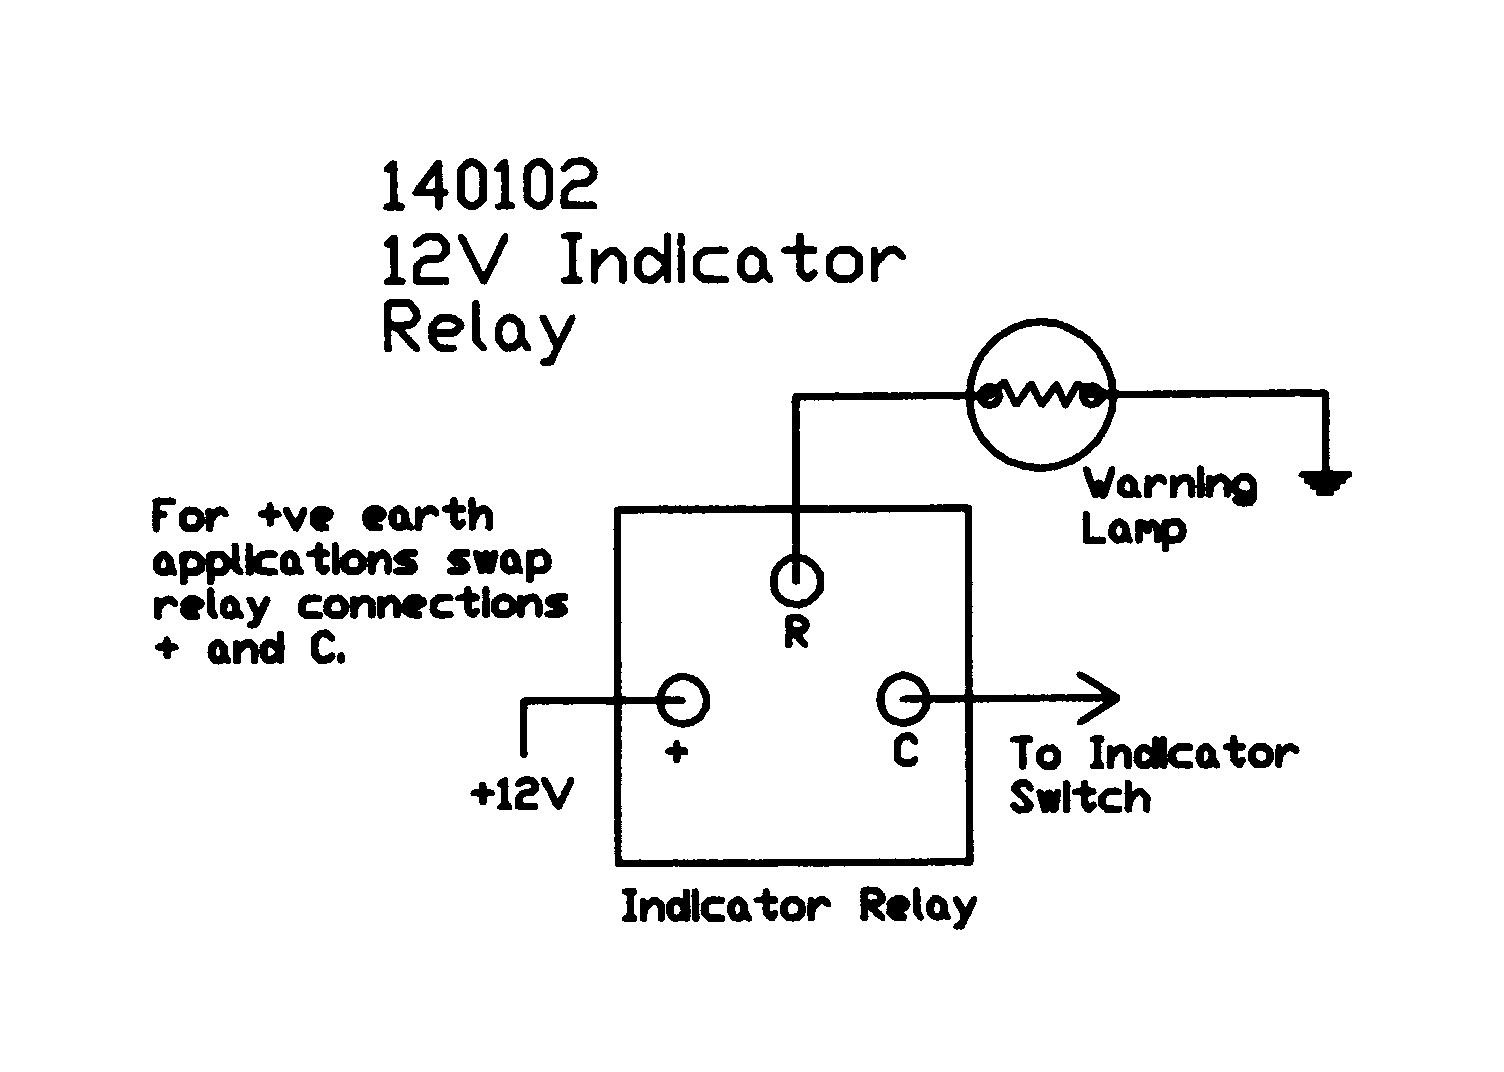 Relay Wiring Diagram Positive Ground Learn Cockshutt 12v Electronic 3 Terminal And Negative Earth Rh Autoelectricsupplies Co Uk